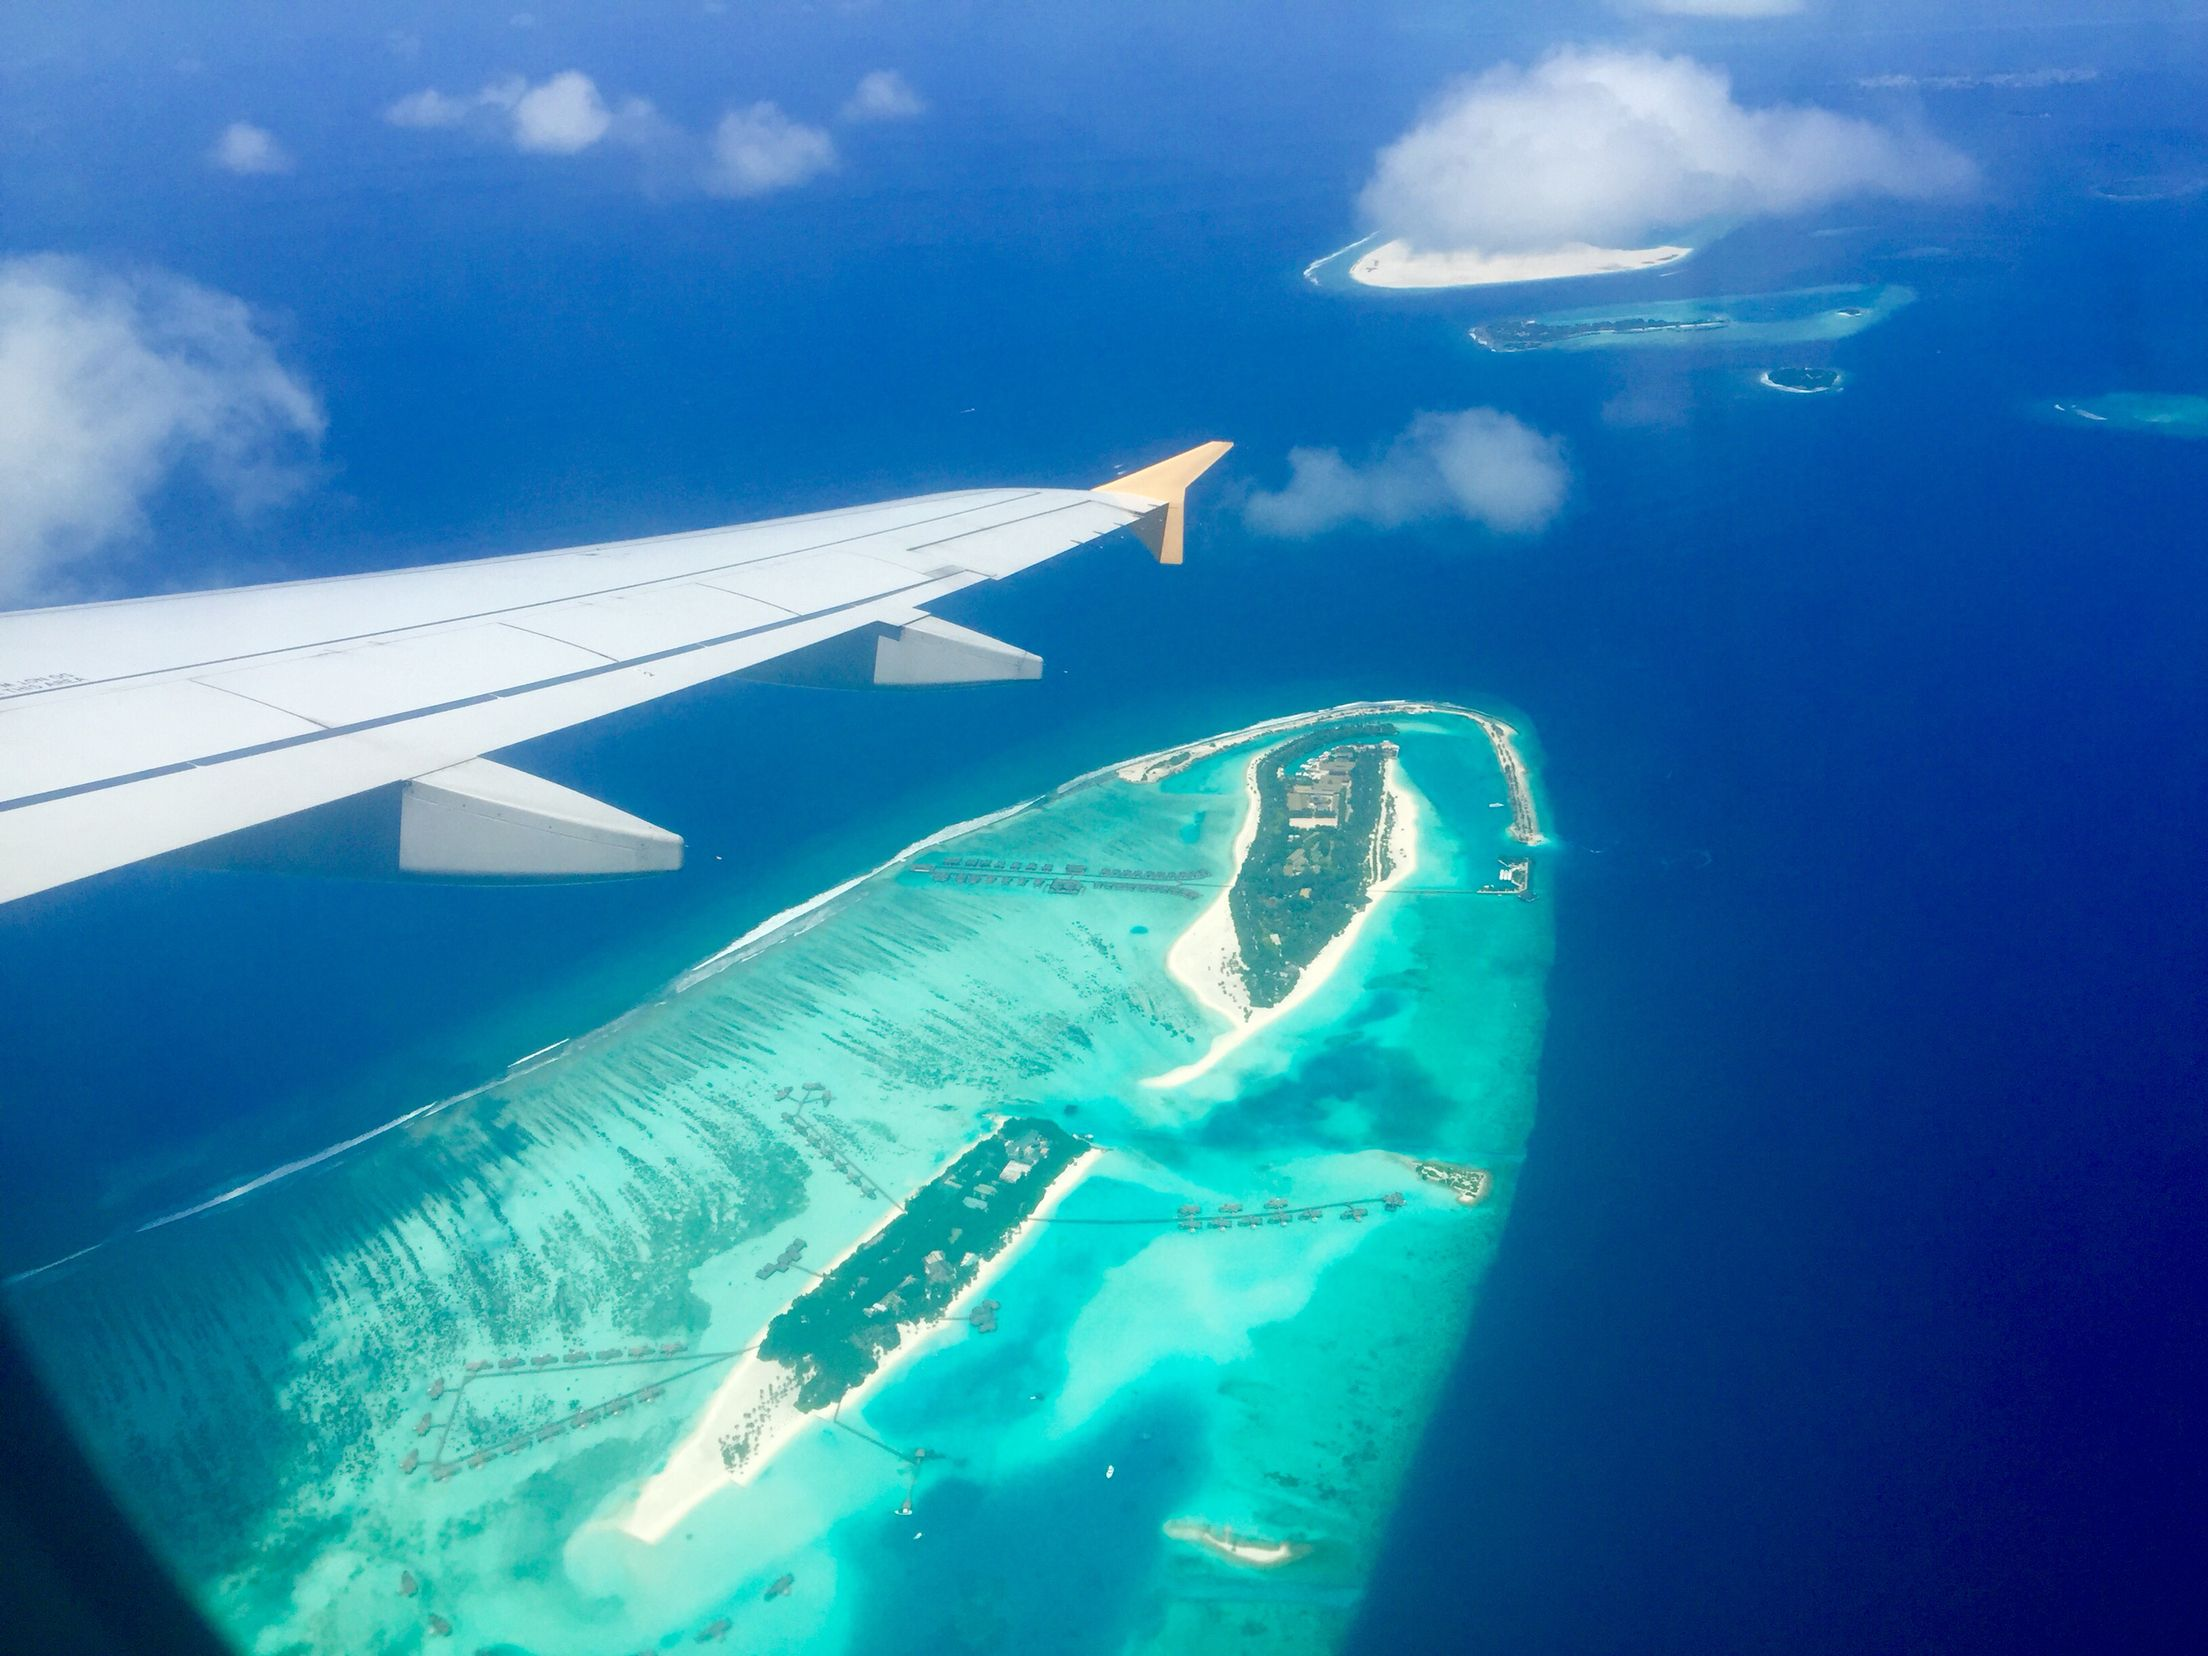 From up top or down below, Maldives is simply stunning..